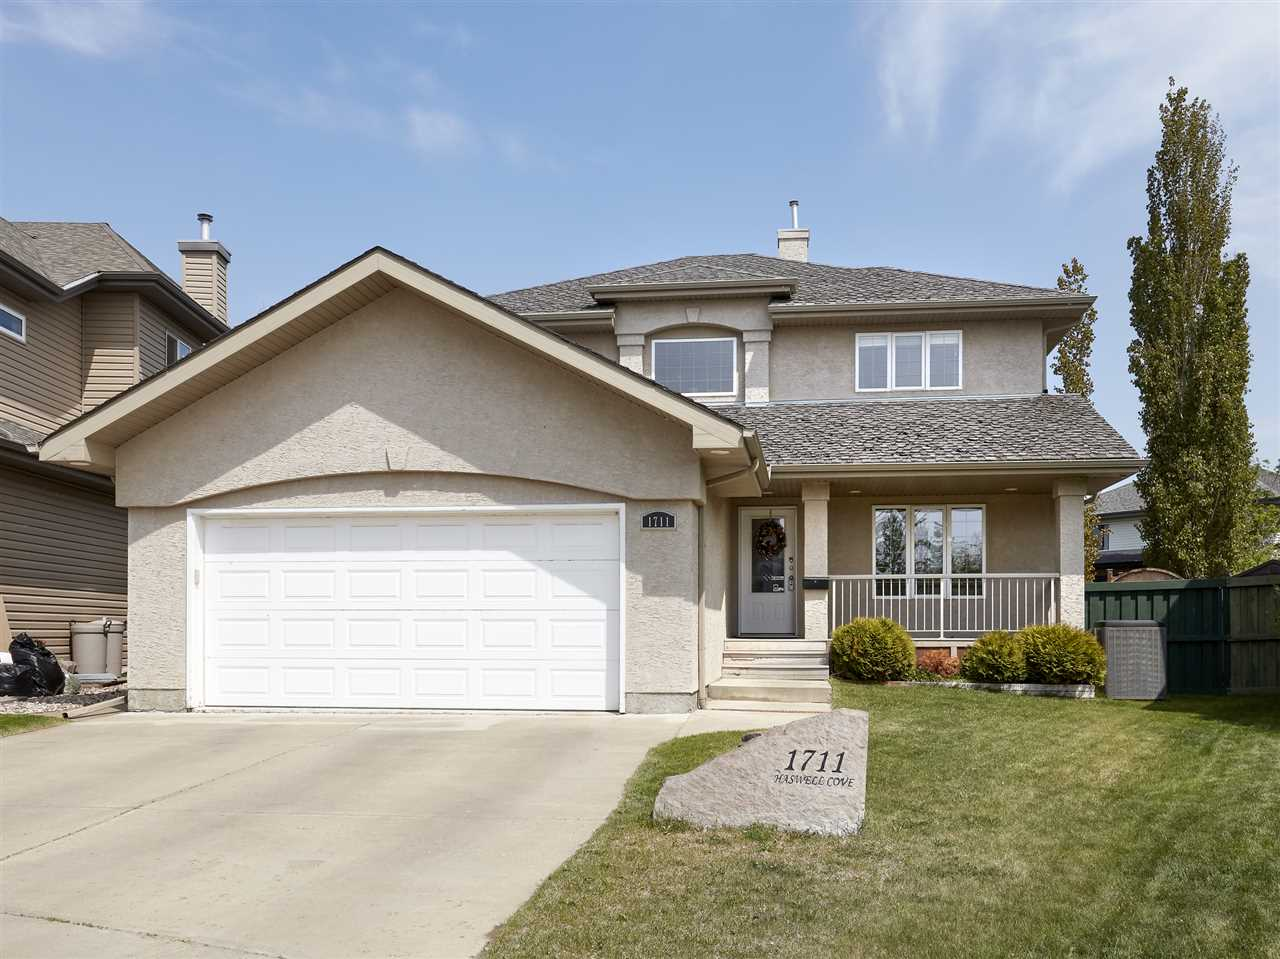 Former BIRKHOLZ Showhome located on a quiet cul-de-sac by a park in Haddow, beautiful finishings throughout. This stunning 2 story home has 2204sqft plus a finished basement totaling over 3379sqft of finished living space ? 4 bedrooms plus den/office, 4 baths - all located on a large pie-shaped lot (7384sqft) & more!  Entering the home you will love the vaulted foyer with a sweeping staircase. Step into the stunning kitchen with upgraded cabinetry & granite counter-tops. Open to the kitchen is the dining area & living room with gas fireplace. The formal dining room, 3 piece bath & boot room complete the main floor. Upstairs the master suite includes a 5 piece ensuite! Beds #2 & #3 are both a good size & a 4 piece bath completes the upper level. Downstairs is finished with a large family room, den/office, 3 piece bath & storage room! Outside enjoy the park like backyard that includes an outdoor sauna that you can use all year round. Incredible upgrades throughout, everything you are looking for in a home!